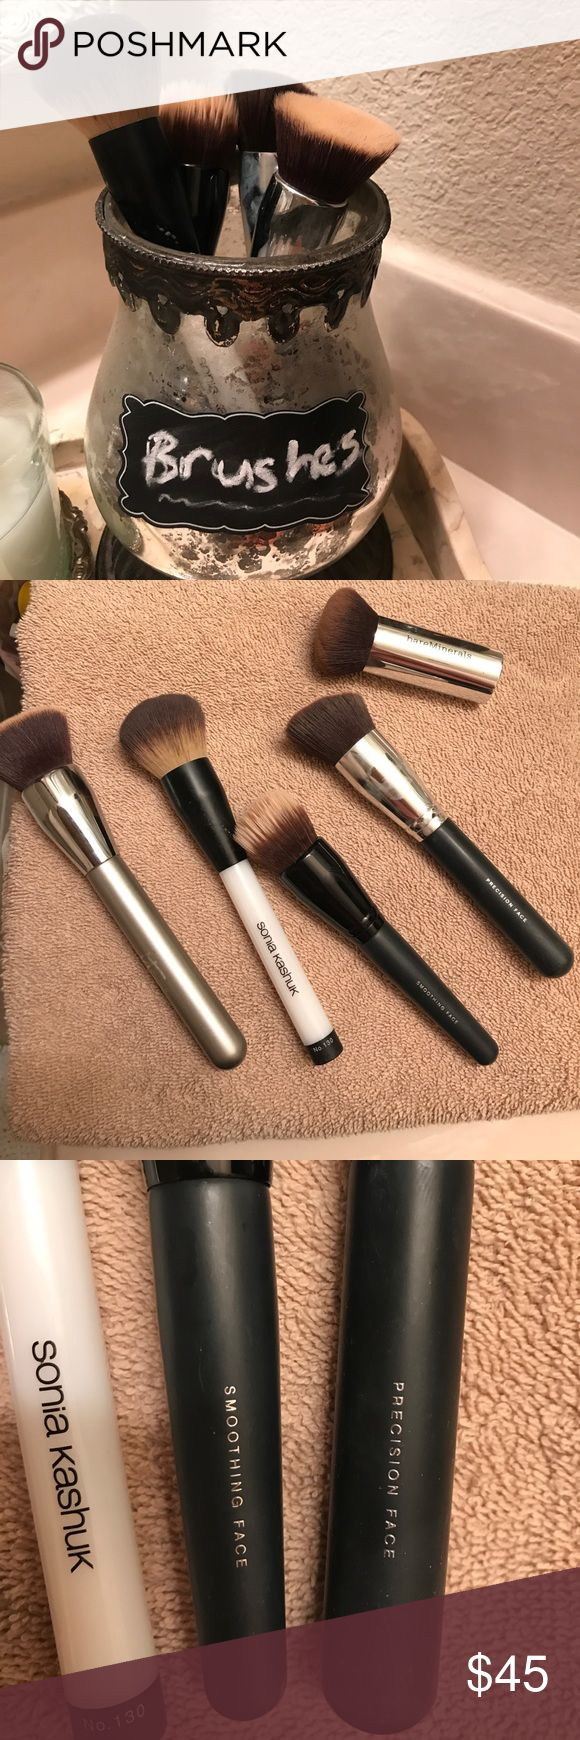 Set of 5 makeup brushes BareMinerals precision face brush; BareMinerals smoothing face brush; Sonia kashuk no 130 powder brush; it cosmetics brushes for ulta airbrush finish brush; BareMinerals seamless buffing brush bareMinerals Makeup Brushes & Tools